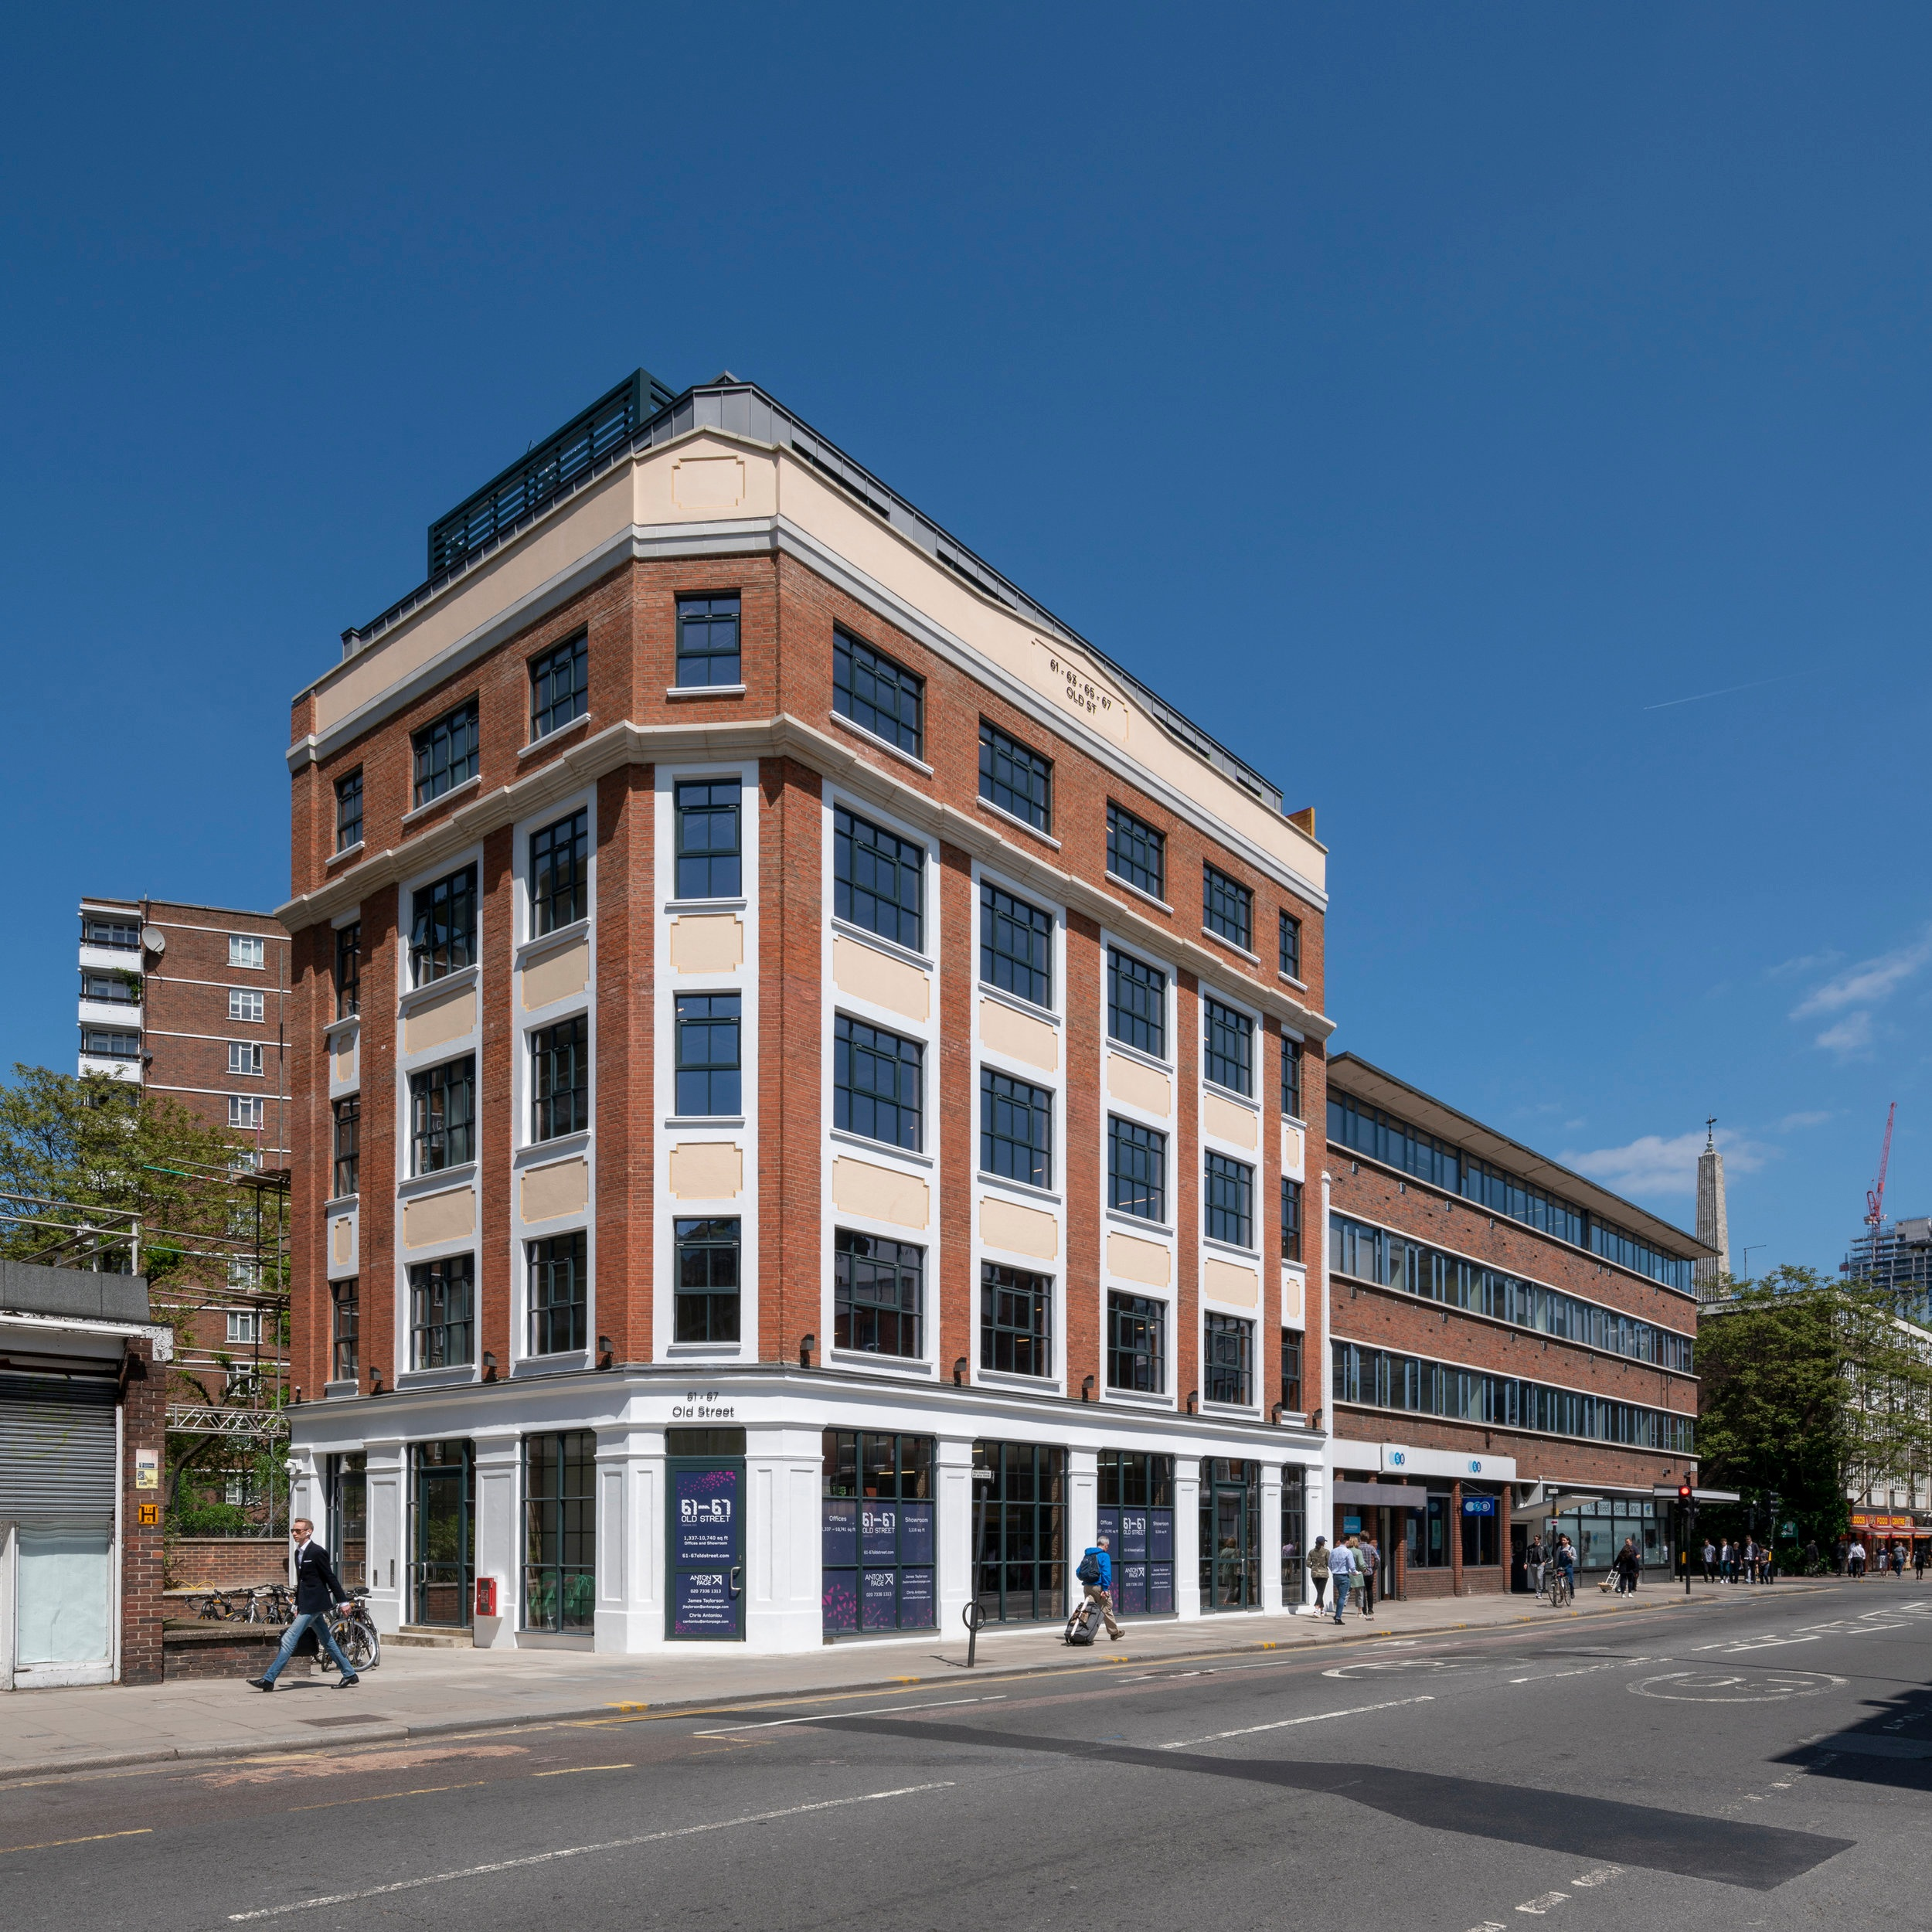 Old St, CLERKENWELL - Acquired in late 2015, this office and showroom building on Old St was purchased in a near derelict condition. Atlas reworked an existing planning consent and secured consent for two new floors of office space, including a full rear infill. The comprehensive redevelopment was completed in June 2018, significantly increasing the internal floor space of the property.